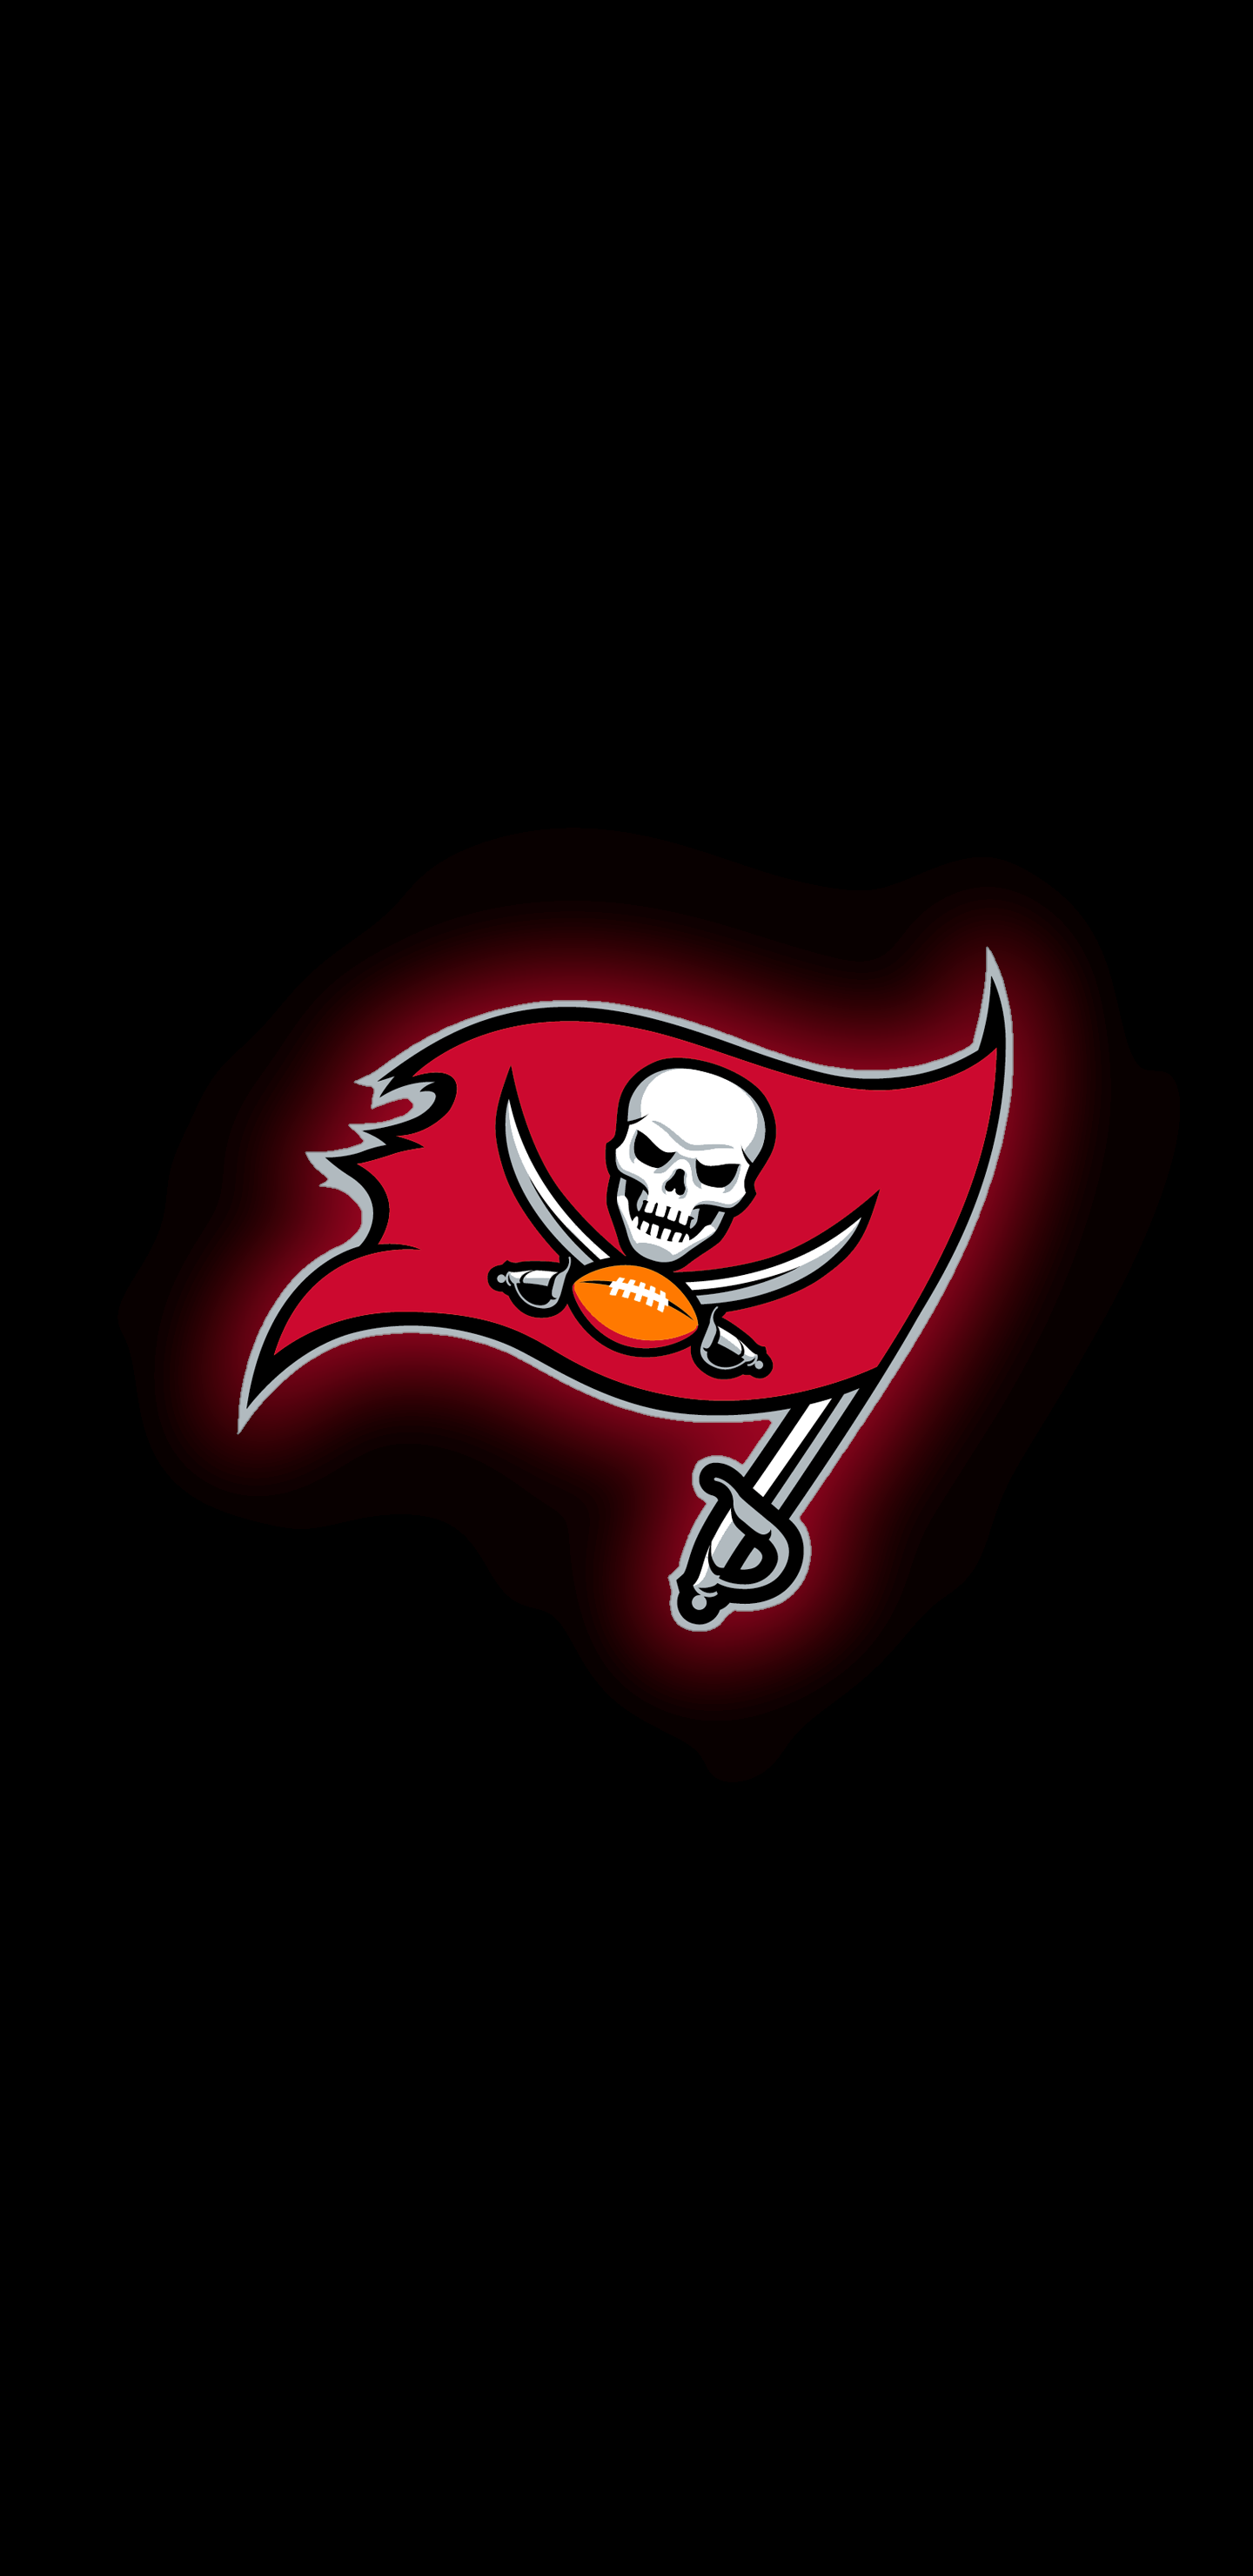 Tampa Bay Buccaneers Iphone 3272504 Hd Wallpaper Backgrounds Download